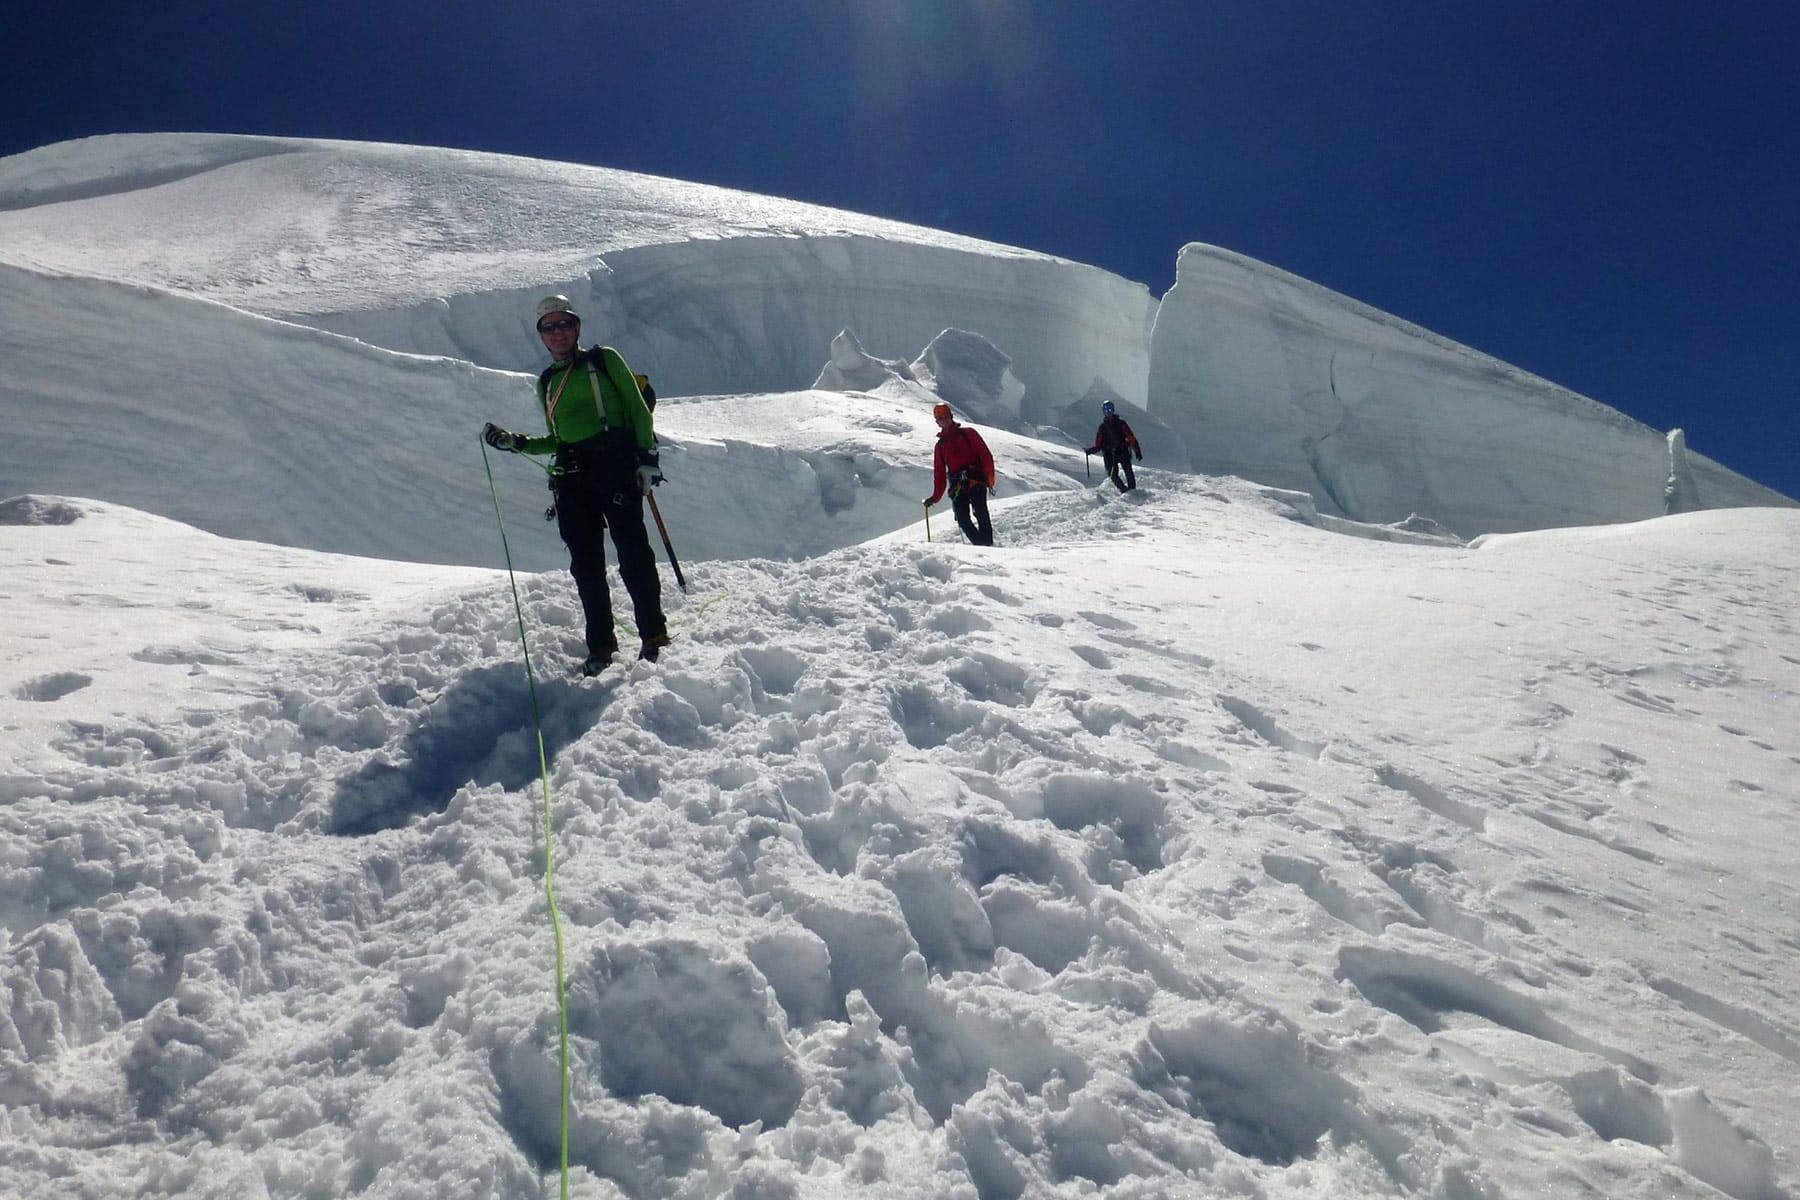 8 summits mountaineering tour in Gran Paradiso and Monte Rosa